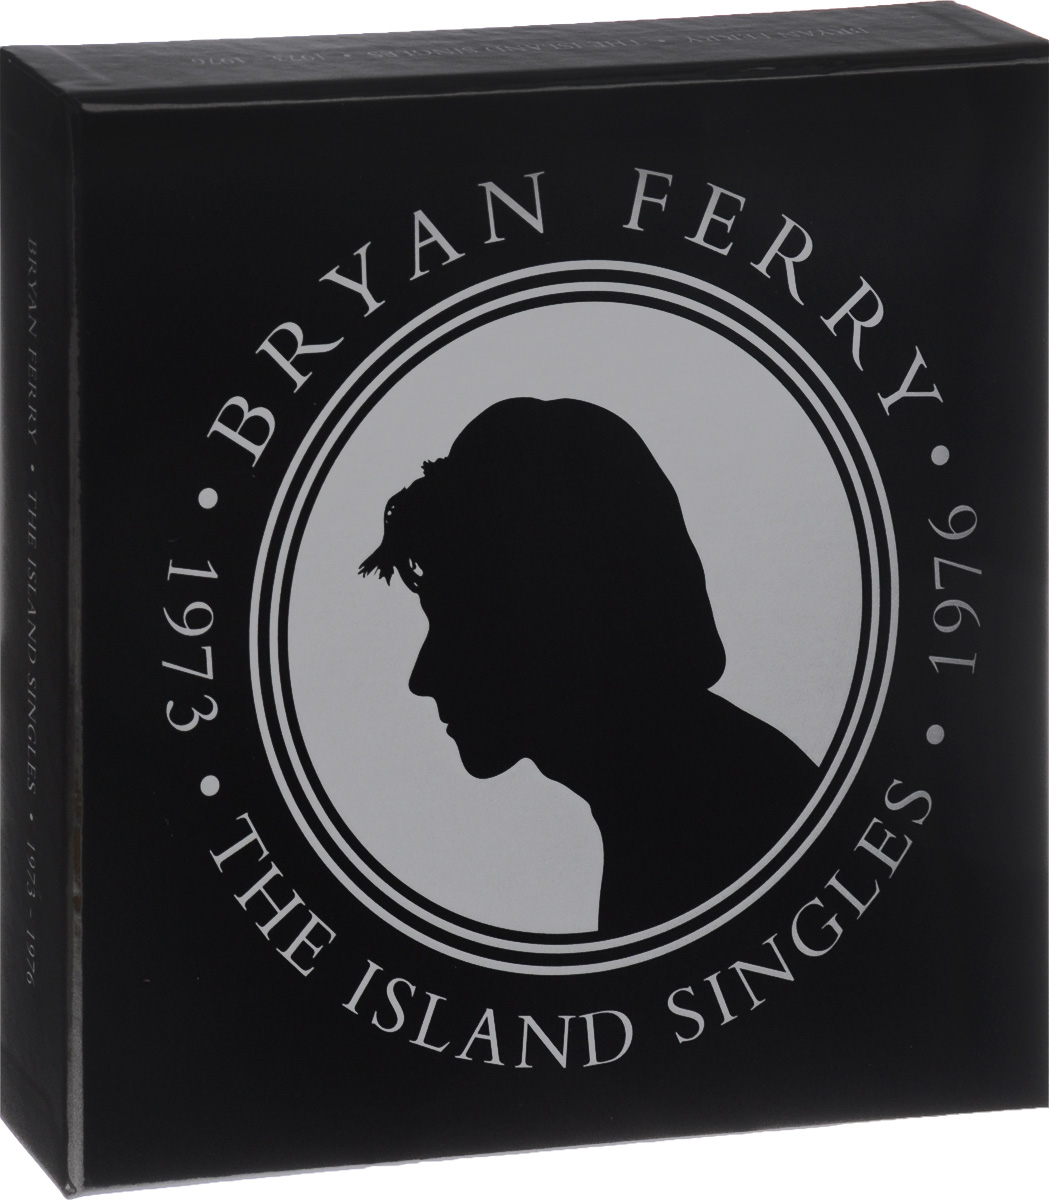 Брайан Ферри Bryan Ferry. The Island Singles. 1973 - 1976 (6 LP) bryan ferry let